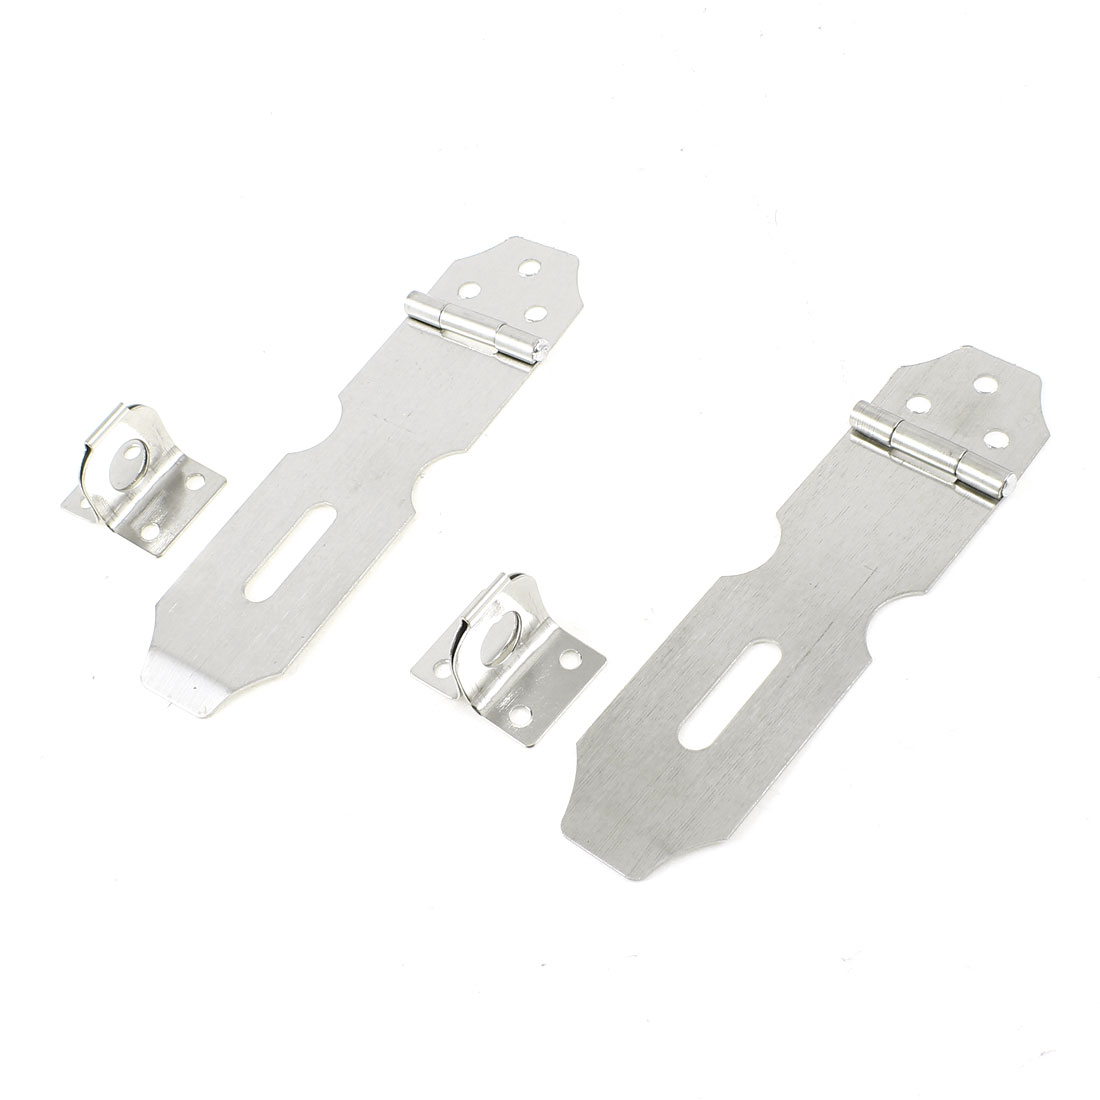 "2 Pcs Cabinet Drawer Door Padlock 3.3"" Long Stainless Steel Hasp Staple Set"